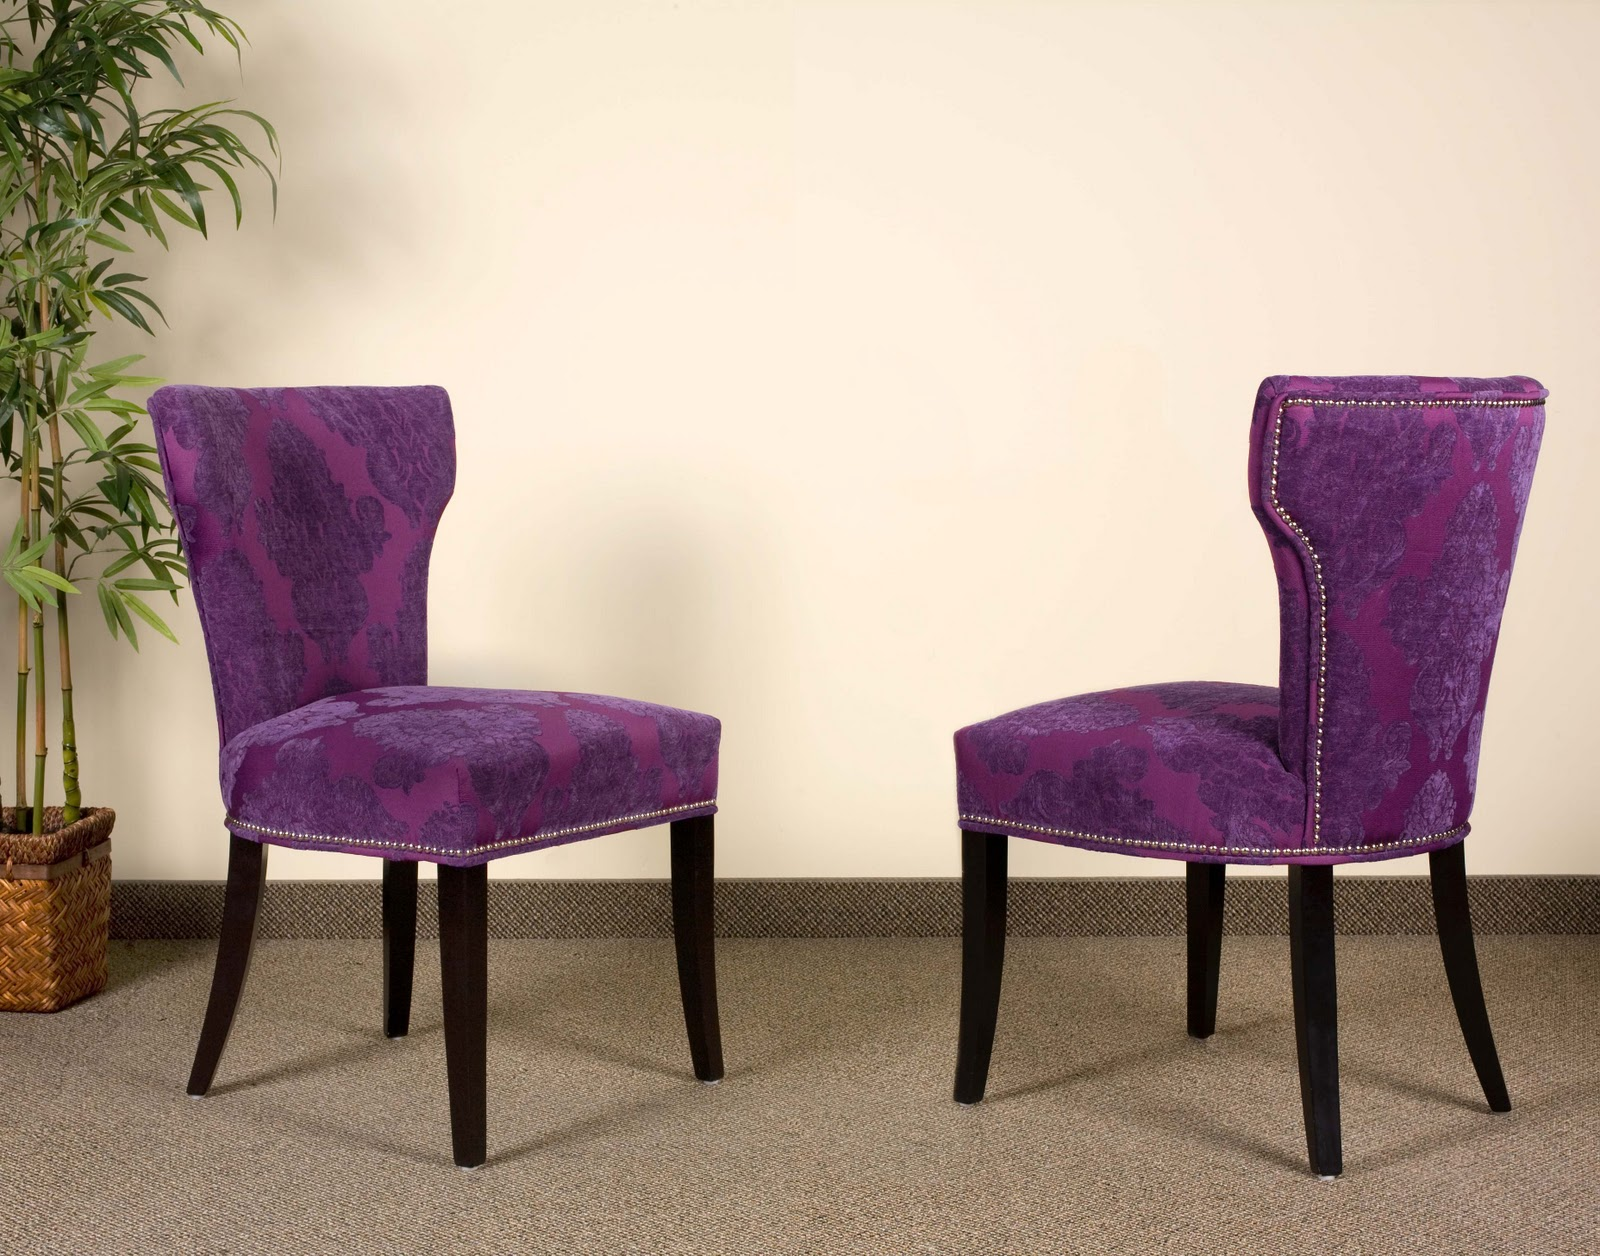 Lavender Chair Design Sense